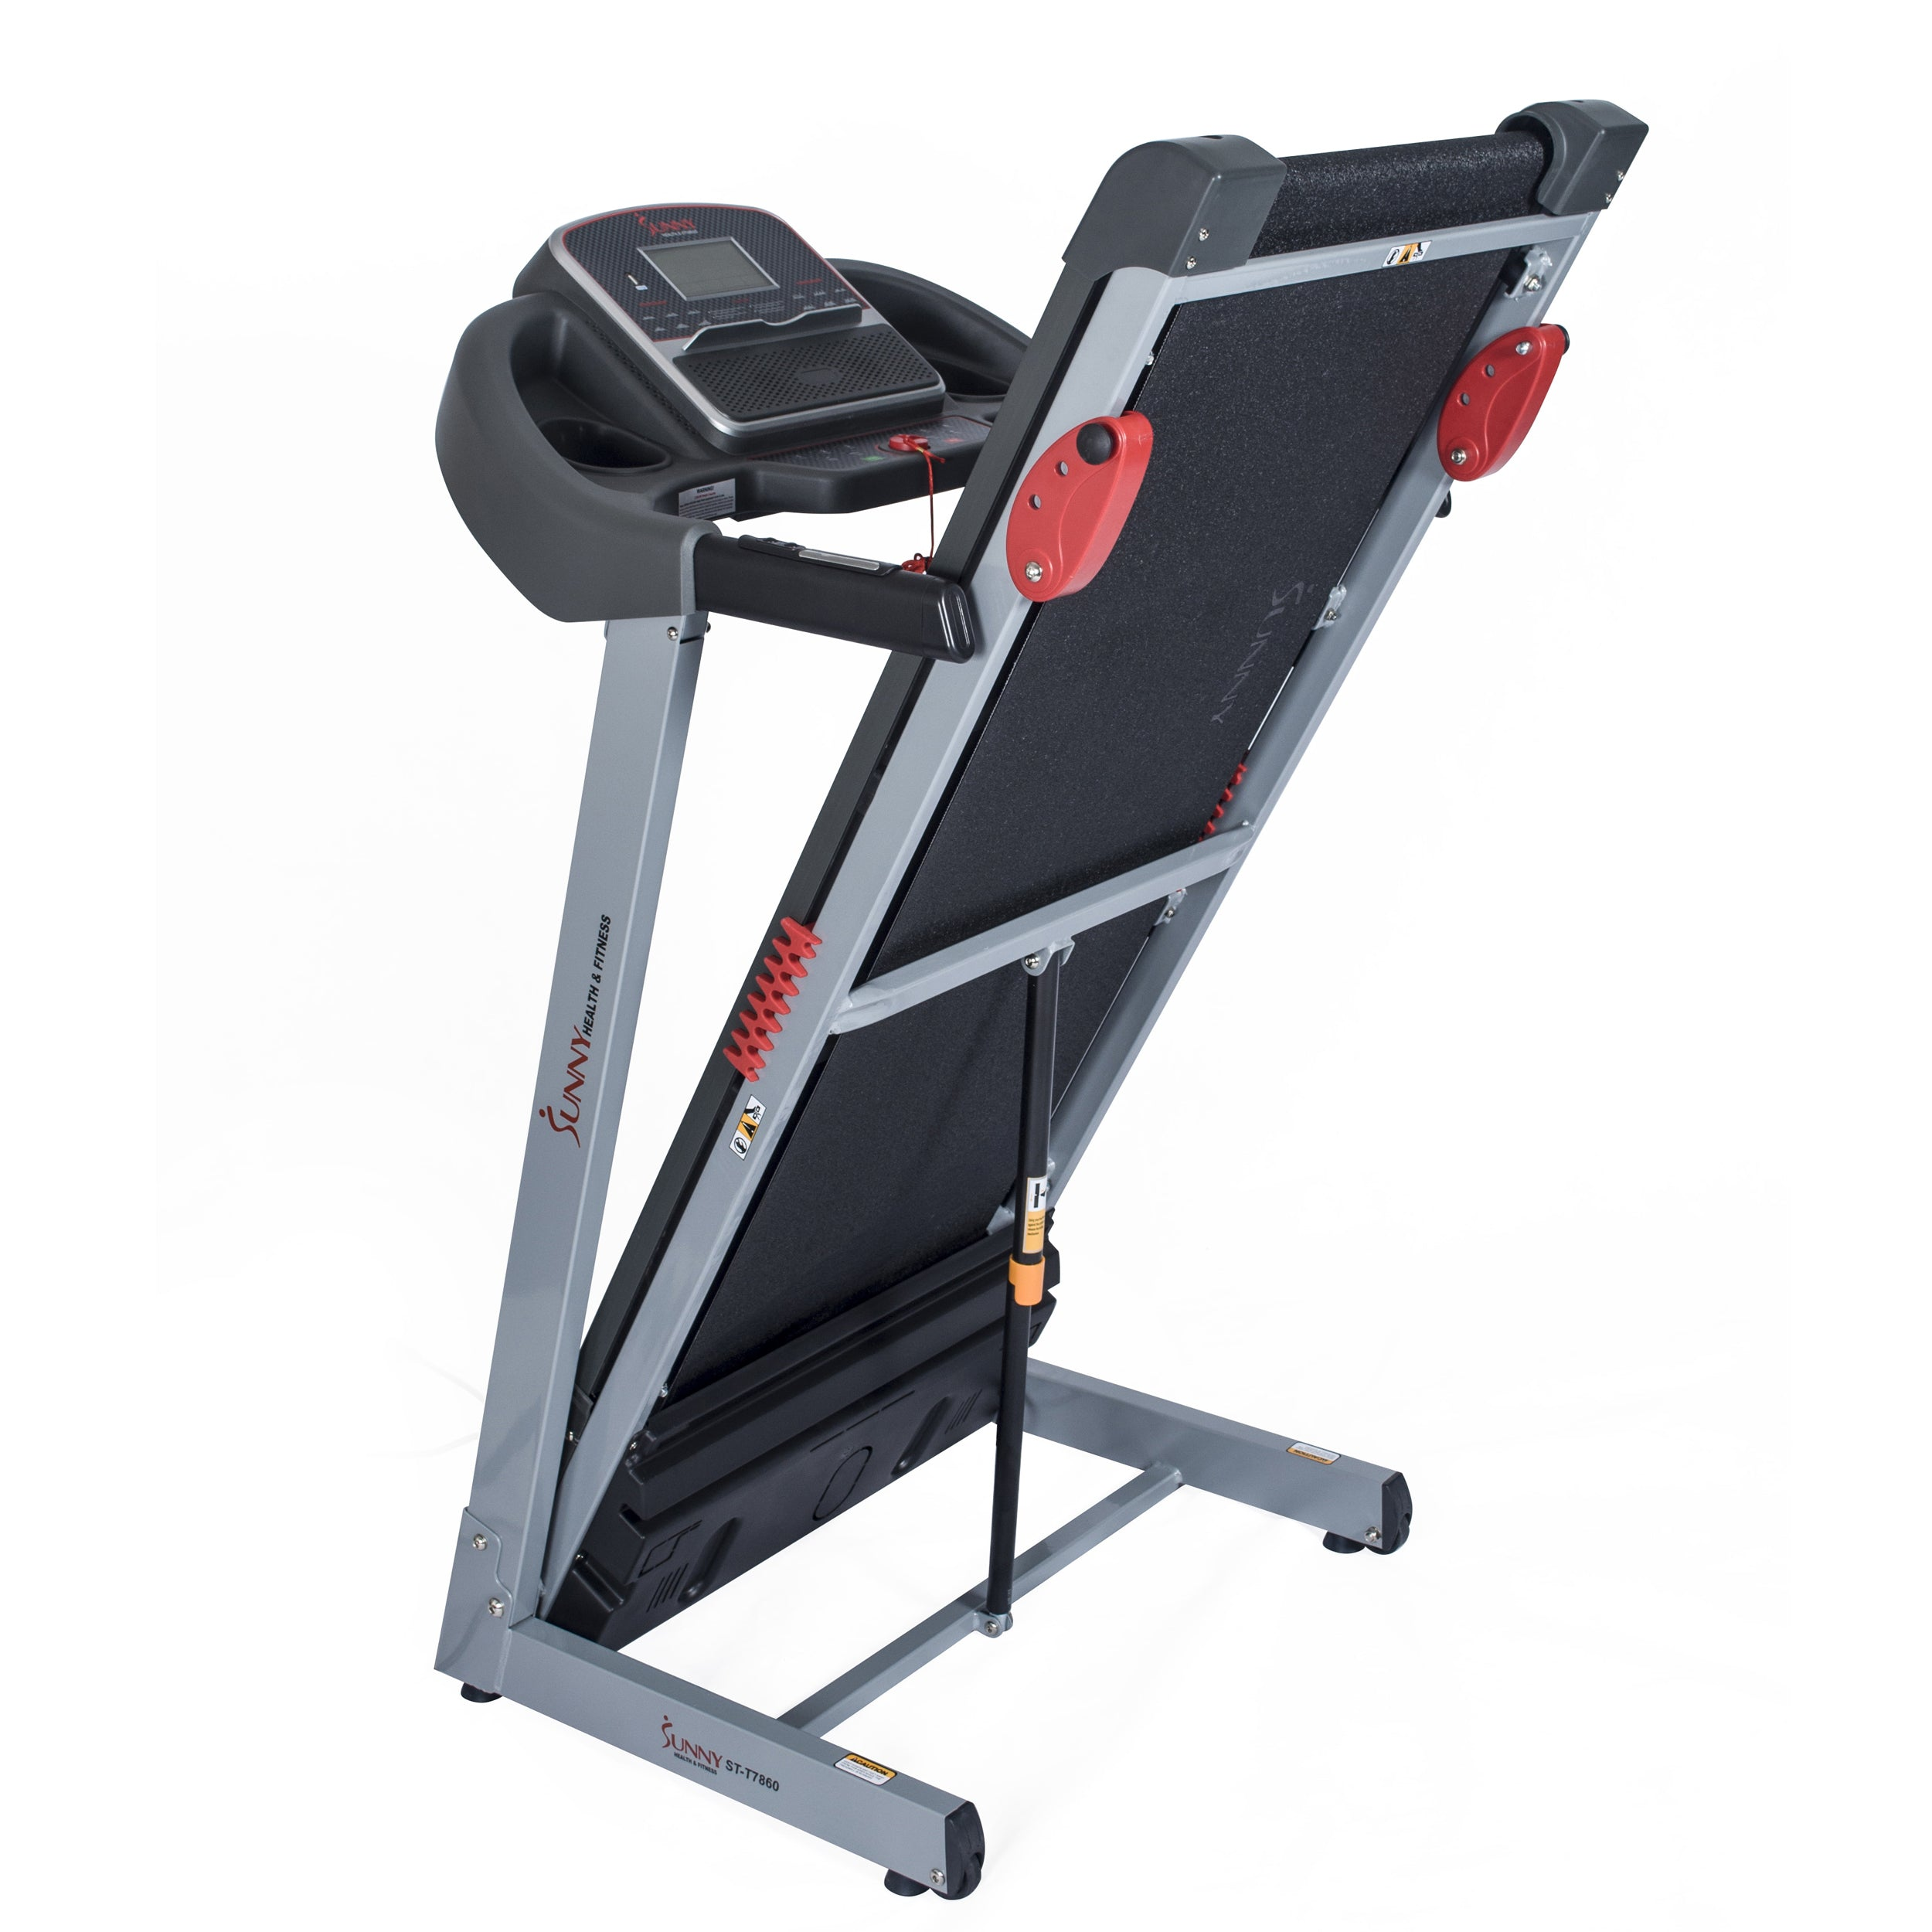 sunny-health-fitness-treadmills-electric-treadmill-manual-incline-USB-charging-function-SF-T7860-foldable